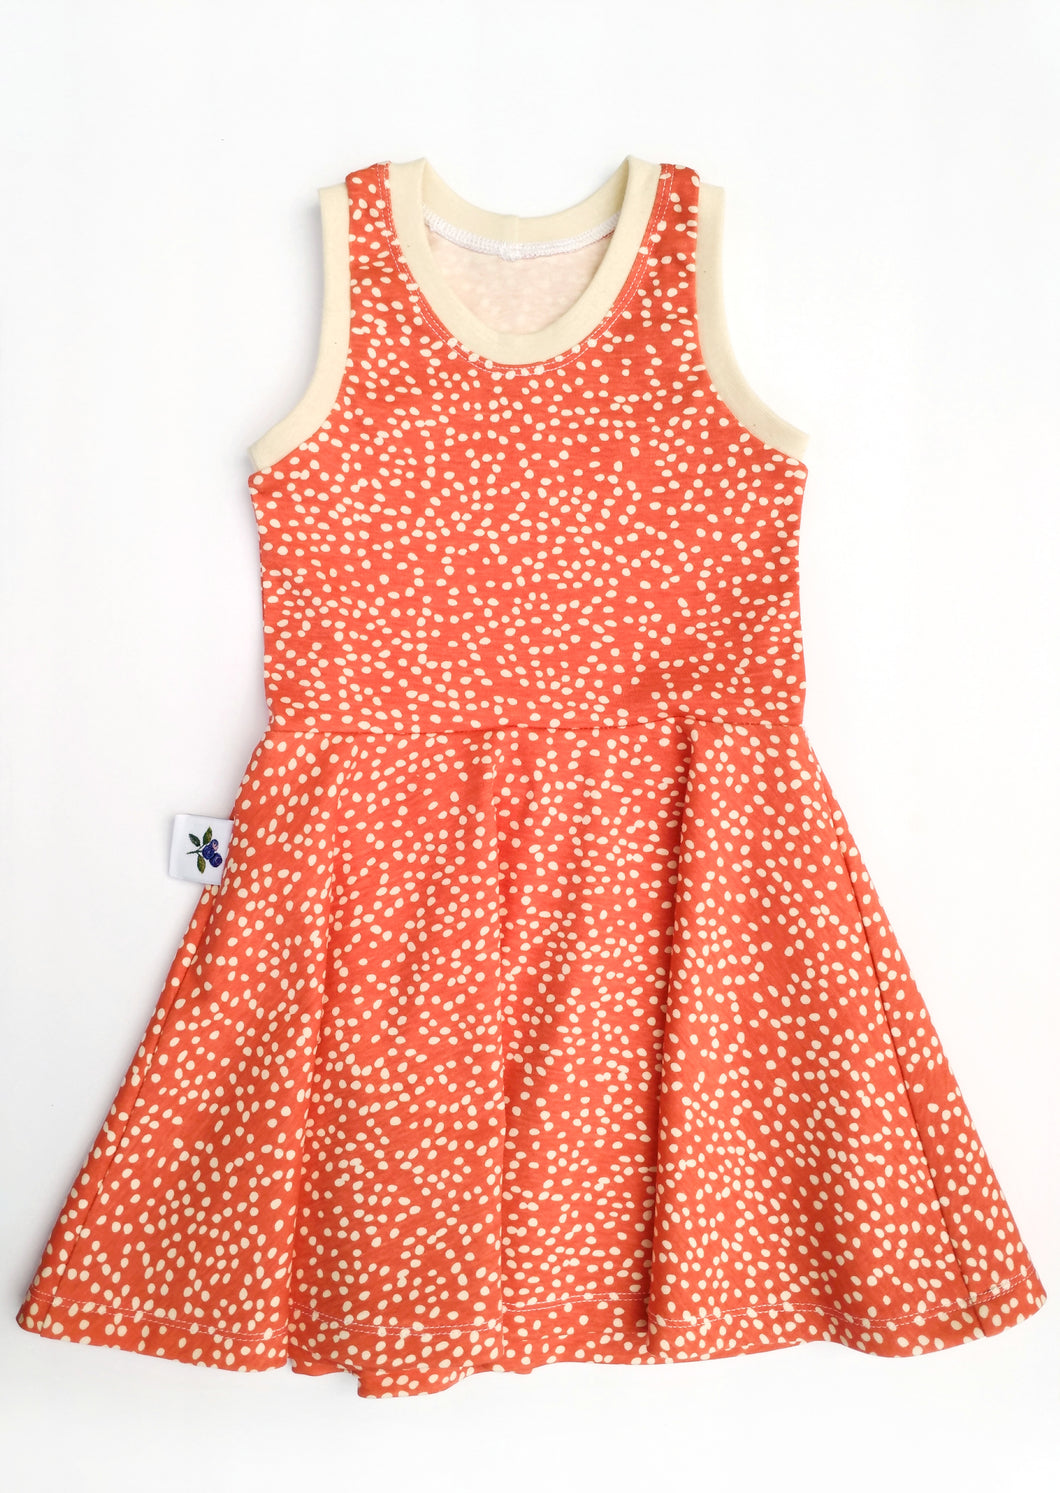 Carefree Dress - Coral, sizes 2T - 7